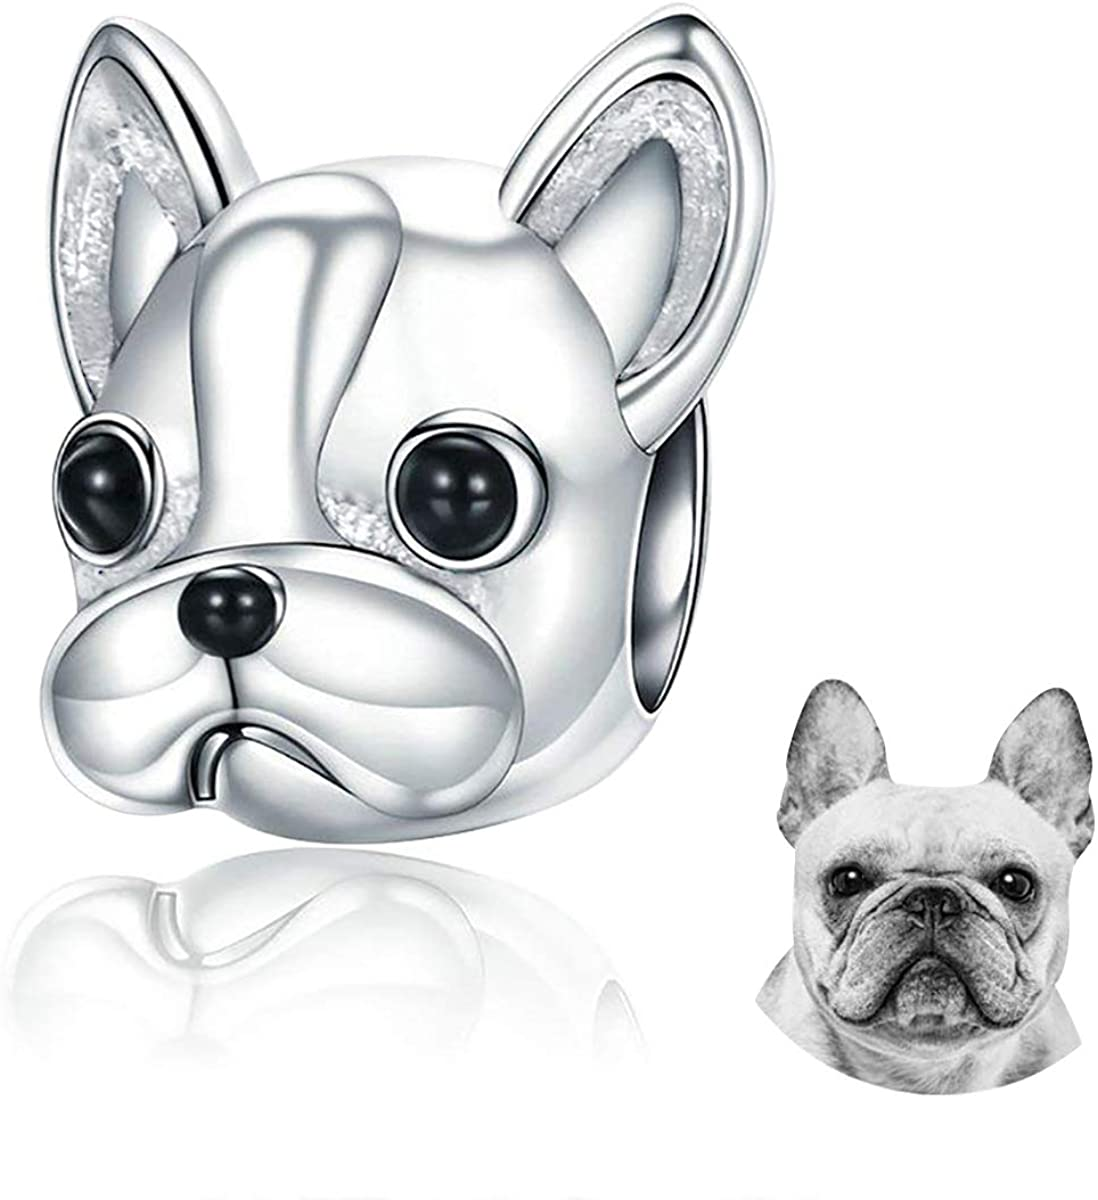 FOREVER QUEEN Dog Atlanta Mall 2021 spring and summer new Charm 925 Sterling Loyal Cute Silver Partners